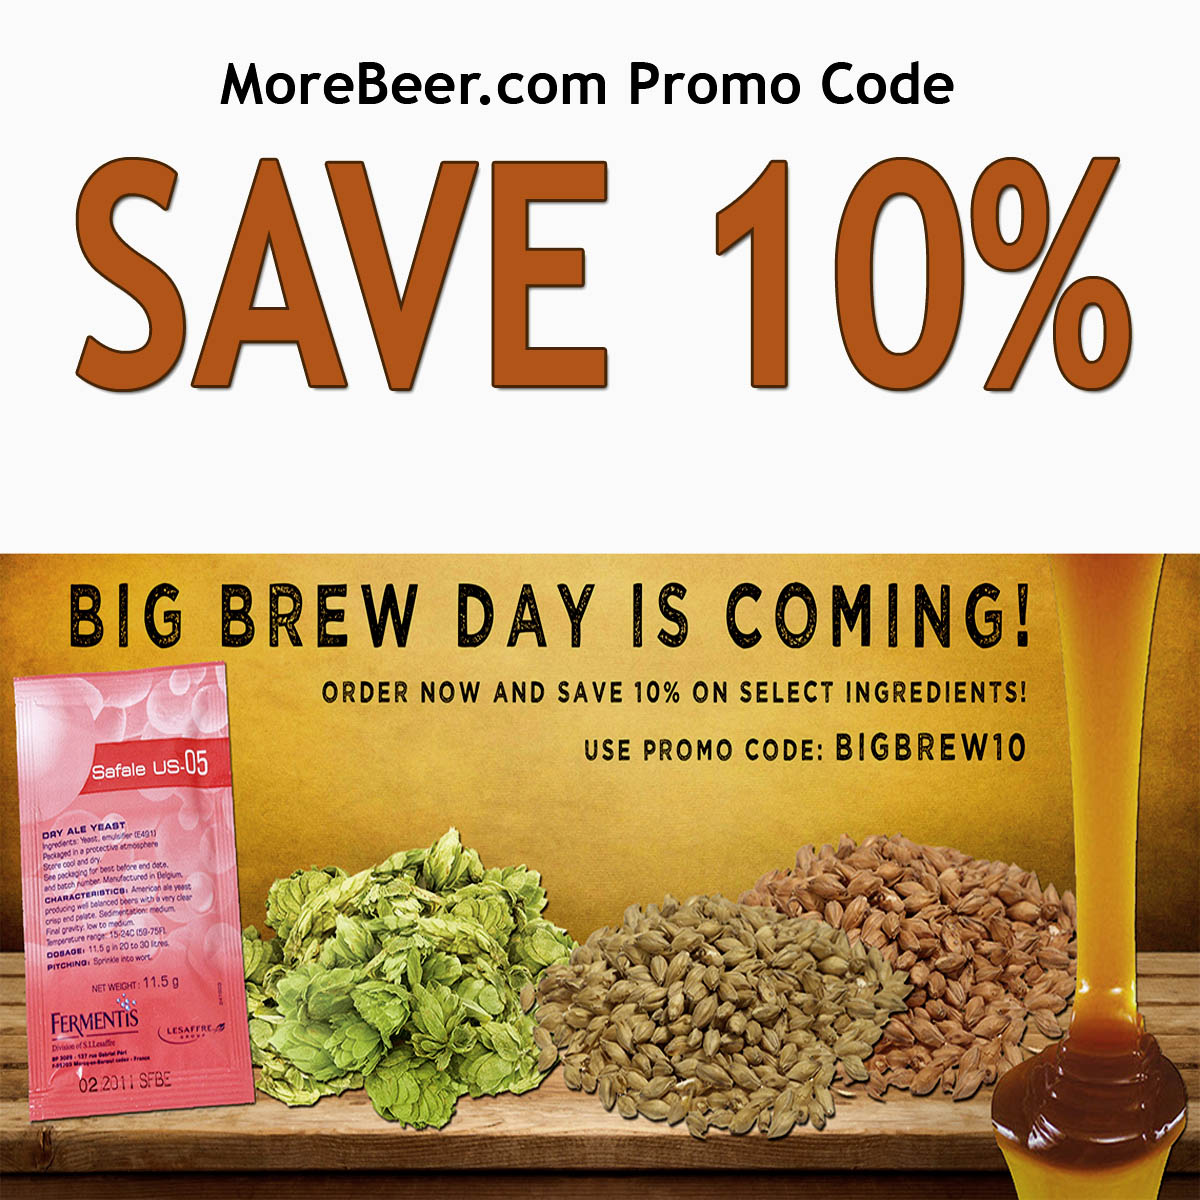 Morebeer coupon code